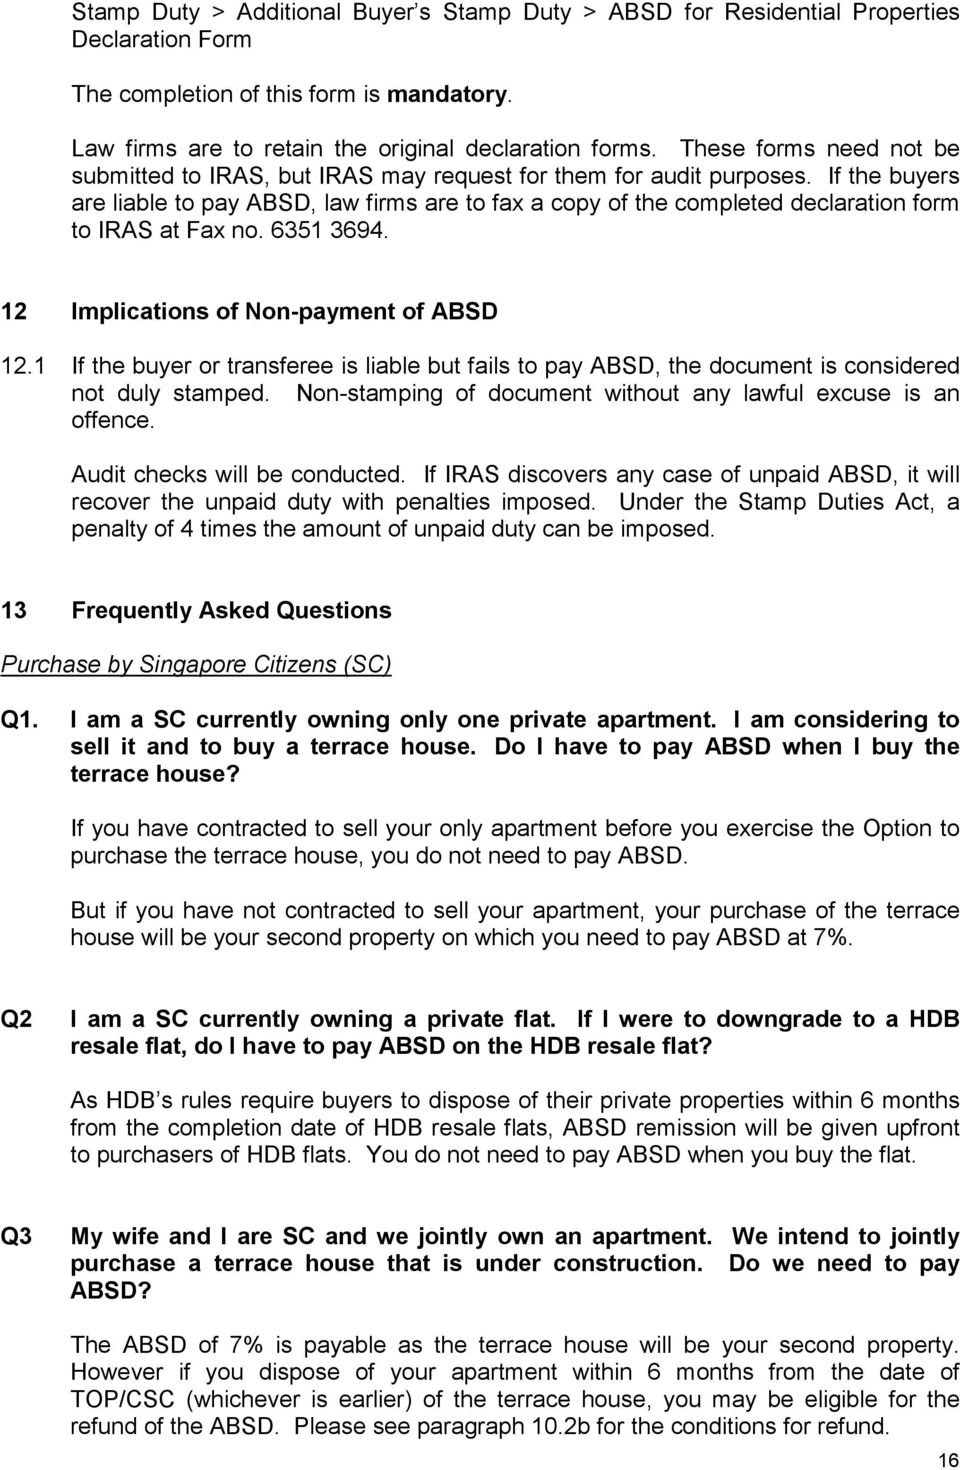 If the buyers are liable to pay ABSD, law firms are to fax a copy of the completed declaration form to IRAS at Fax no. 6351 3694. 12 Implications of Non-payment of ABSD 12.